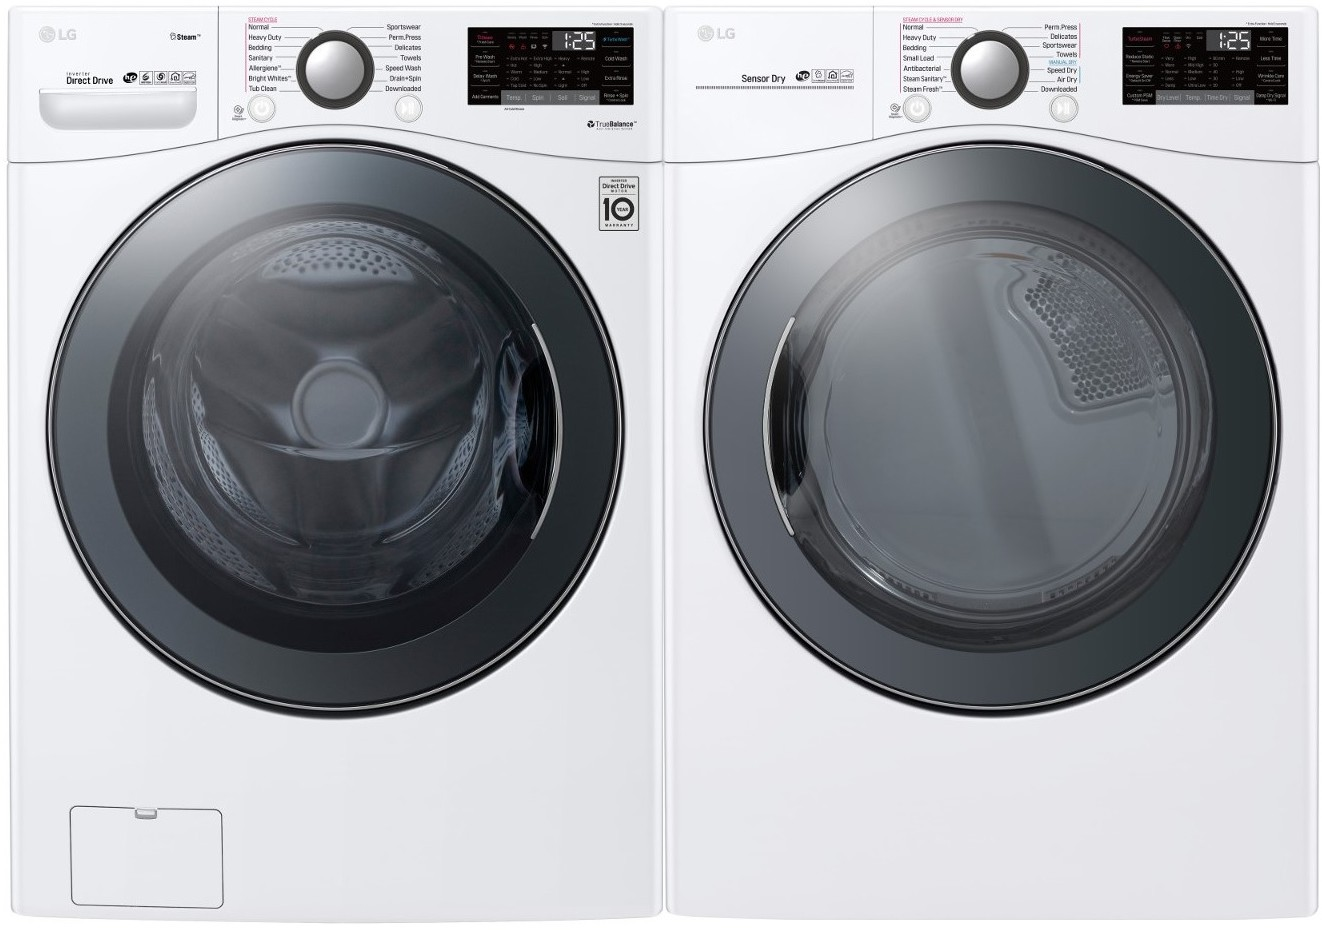 lg download mode washer